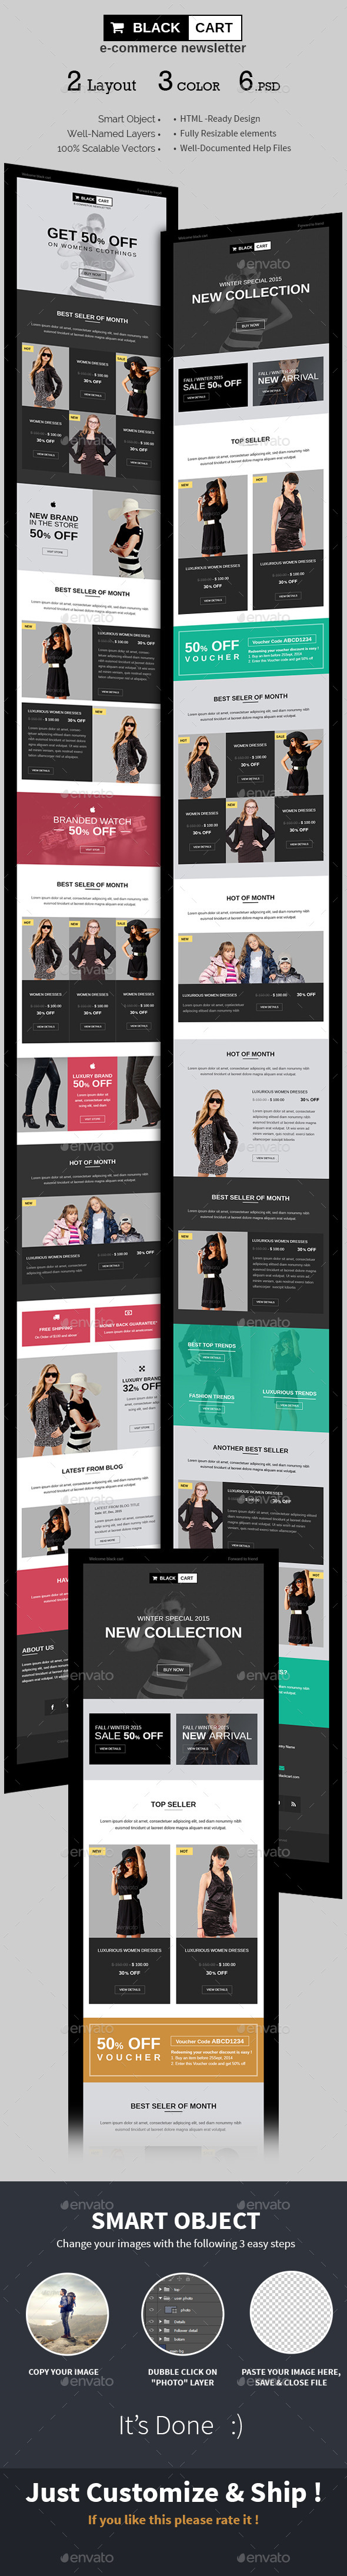 E-commerce Special Offers Newsletter PSD Template